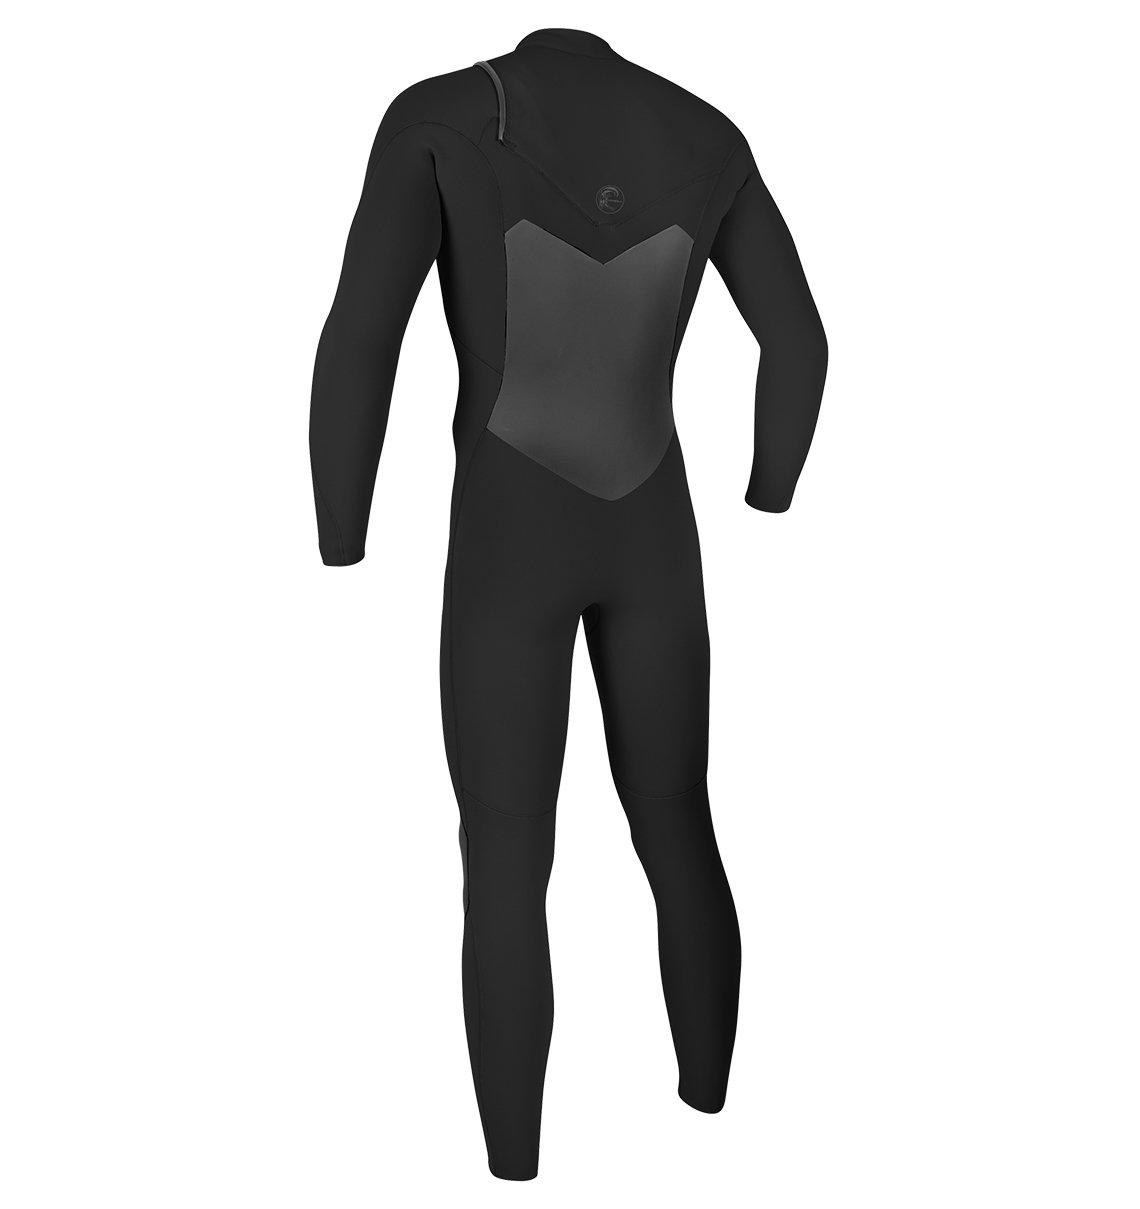 O'Neill Men's O'Riginal 4/3mm Chest Zip Full Wetsuit, Black/Black, Small by O'Neill Wetsuits (Image #2)